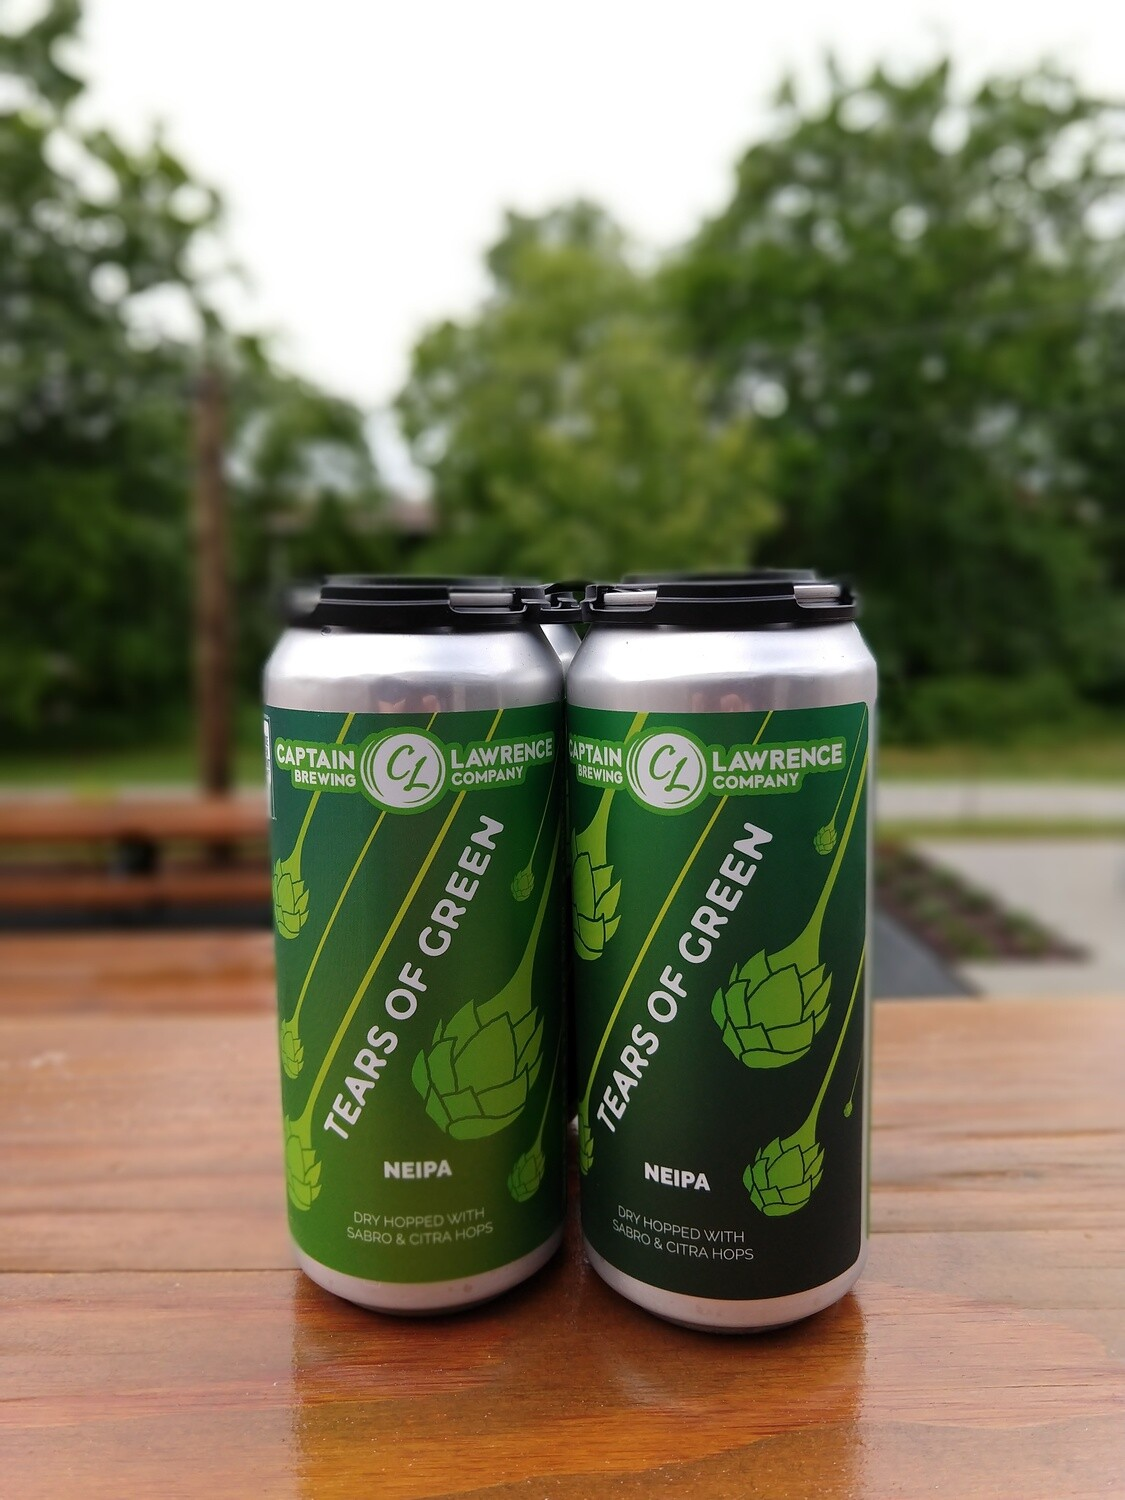 Captain Lawrence Tears Of Green 16oz Cans (4pk)